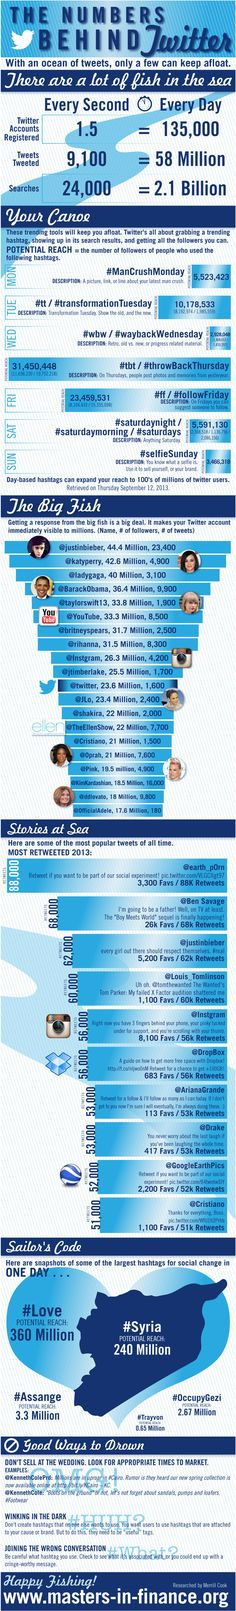 60 Sensational Social Media Facts and Statistics on #Twitter in 2013 - Jeffbullas's Blog #infographic